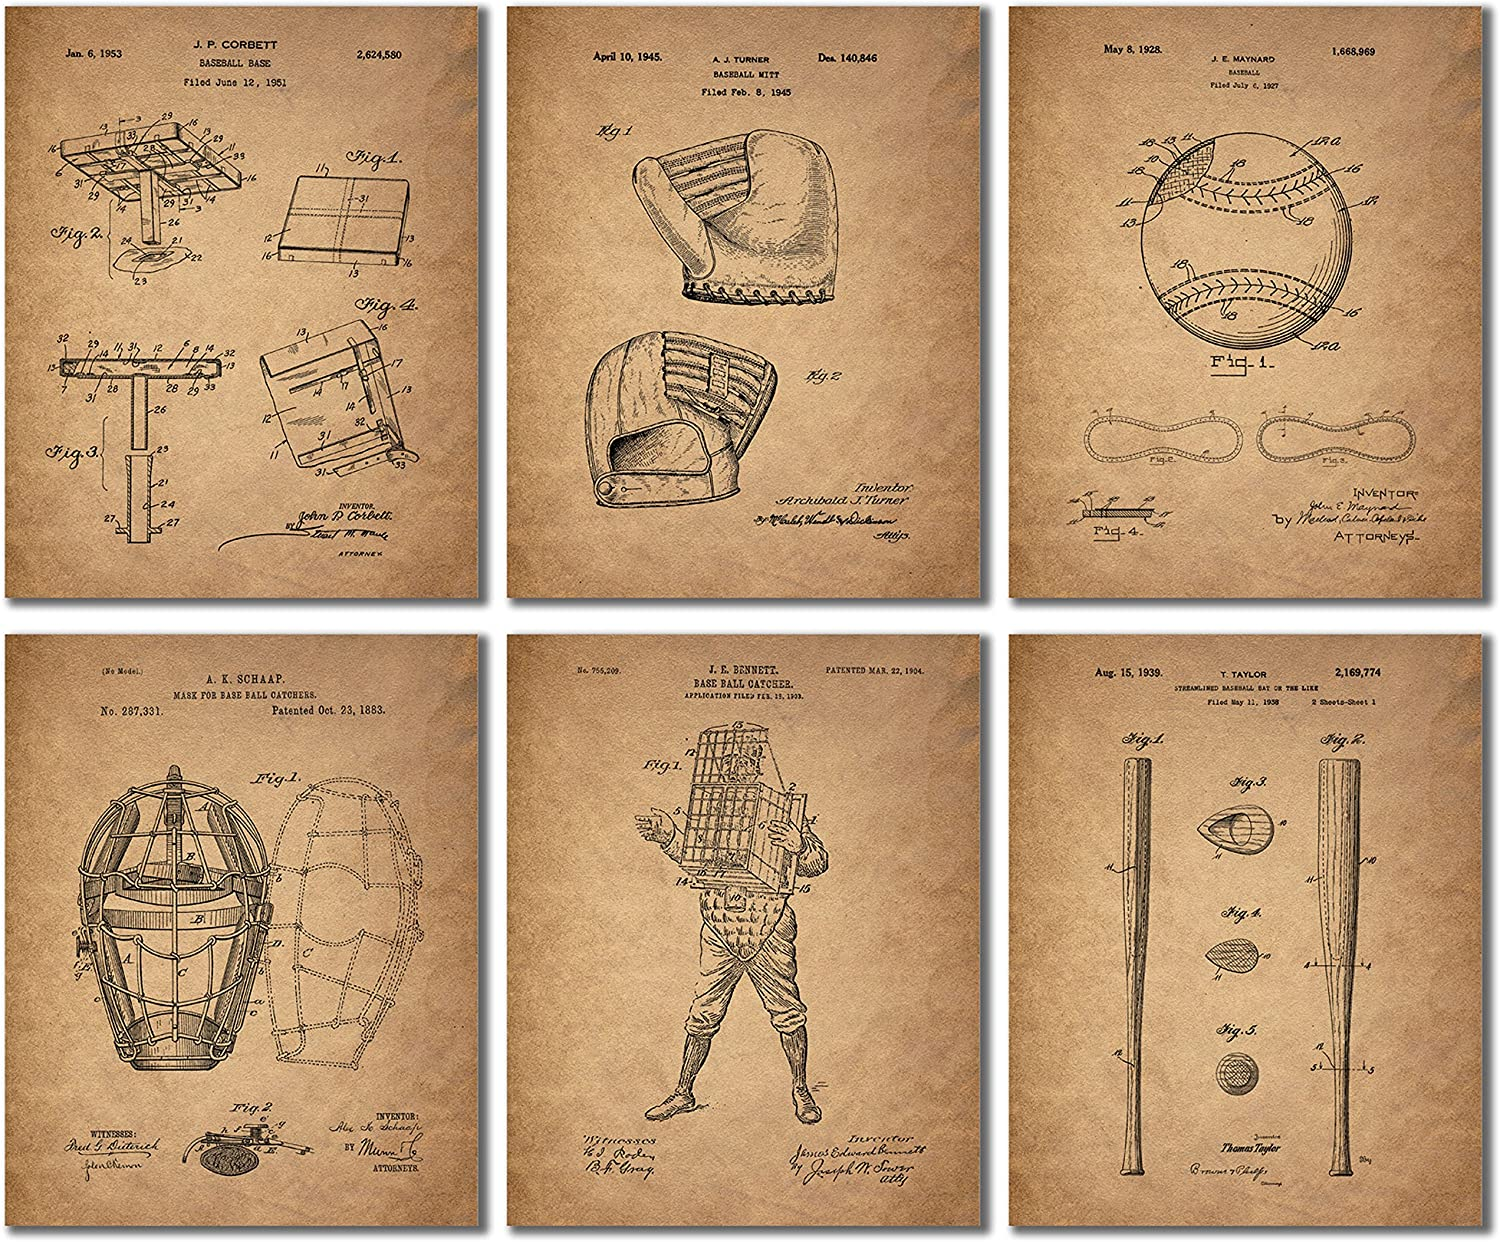 Baseball Patent Wall Art Prints - Set of 6 (8 inches by 10 inches) Vintage Antique Photos